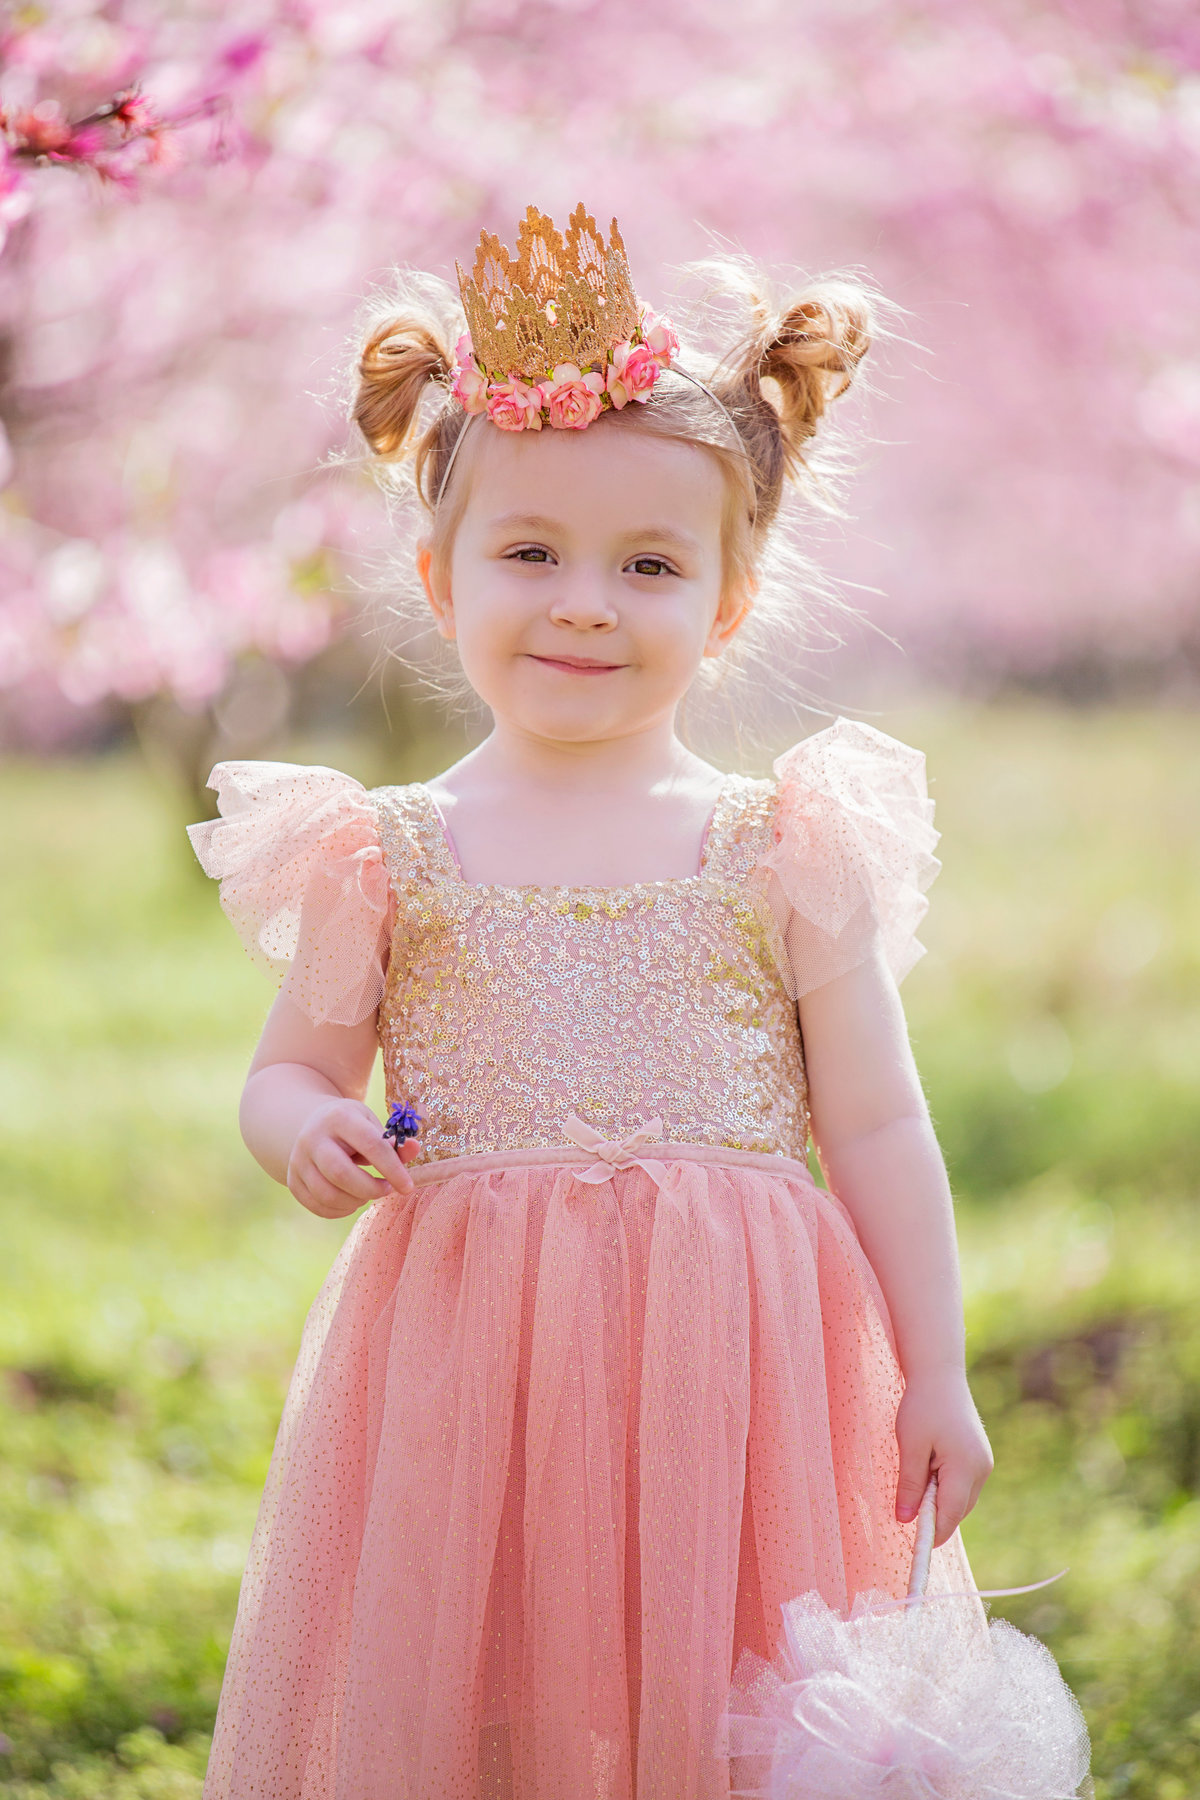 charlotte family photographer jamie lucido creates a beautiful styled image of a child in a princess dress at the cherry blossoms